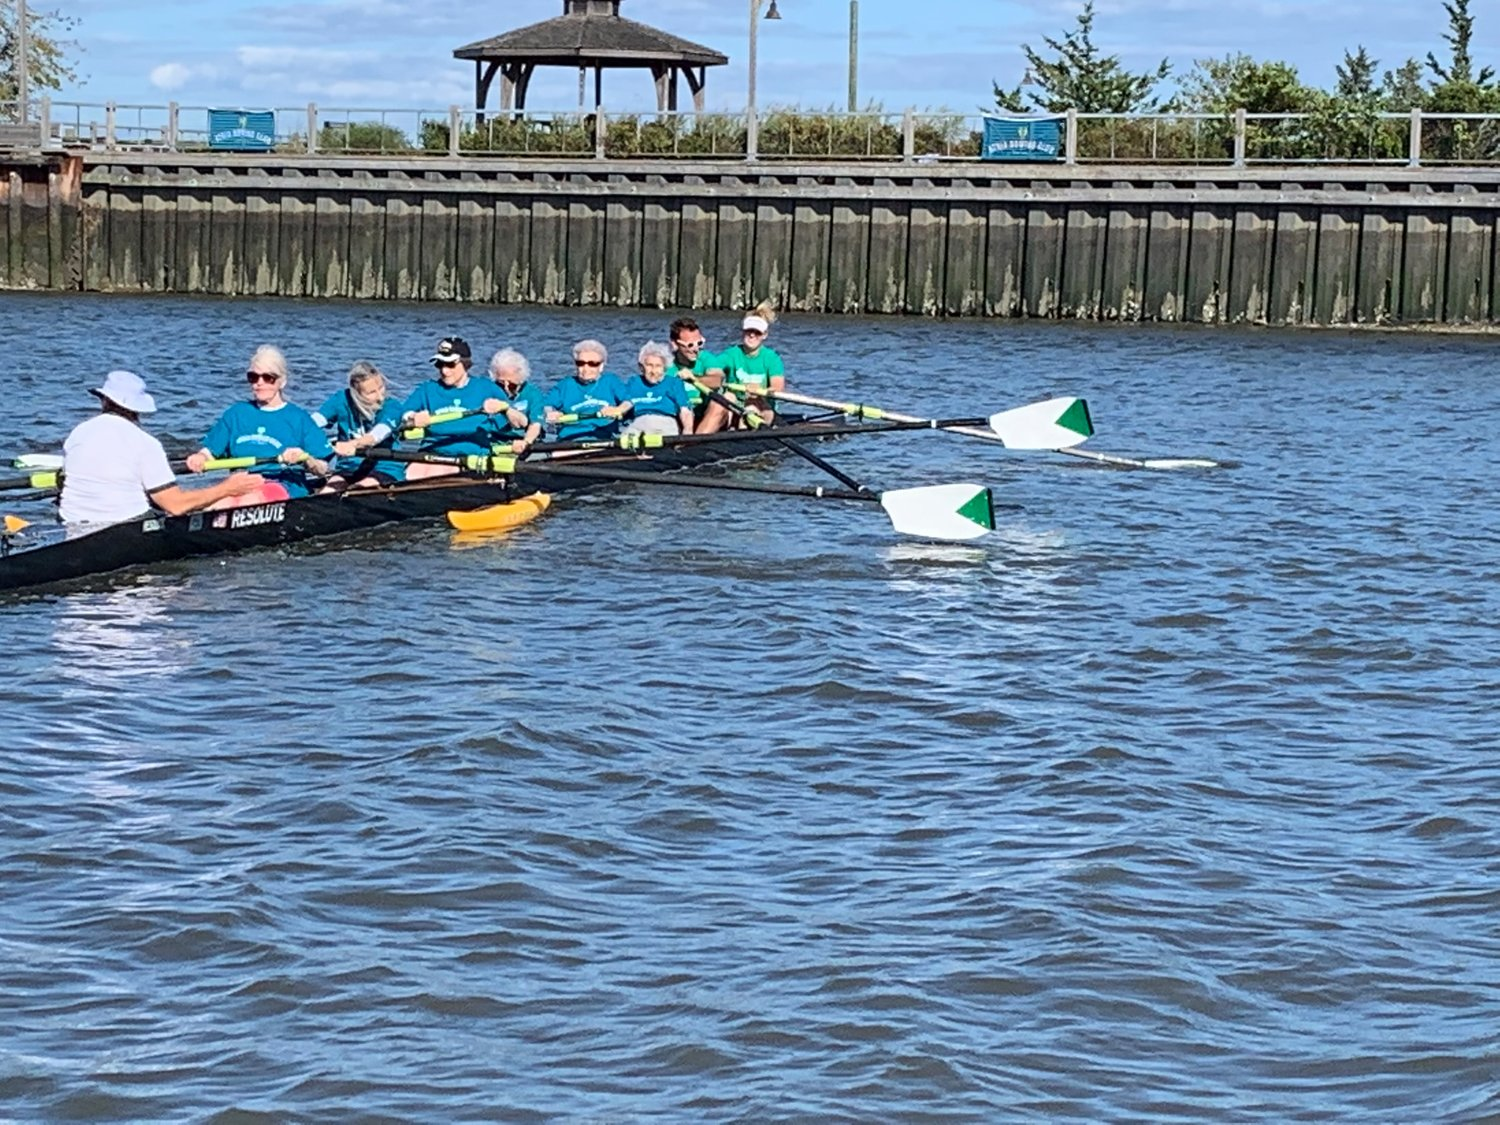 Members of Lynbrook's Atria Senior Rowing Club paddled through the waters of Oyster Bay on Sept. 24.